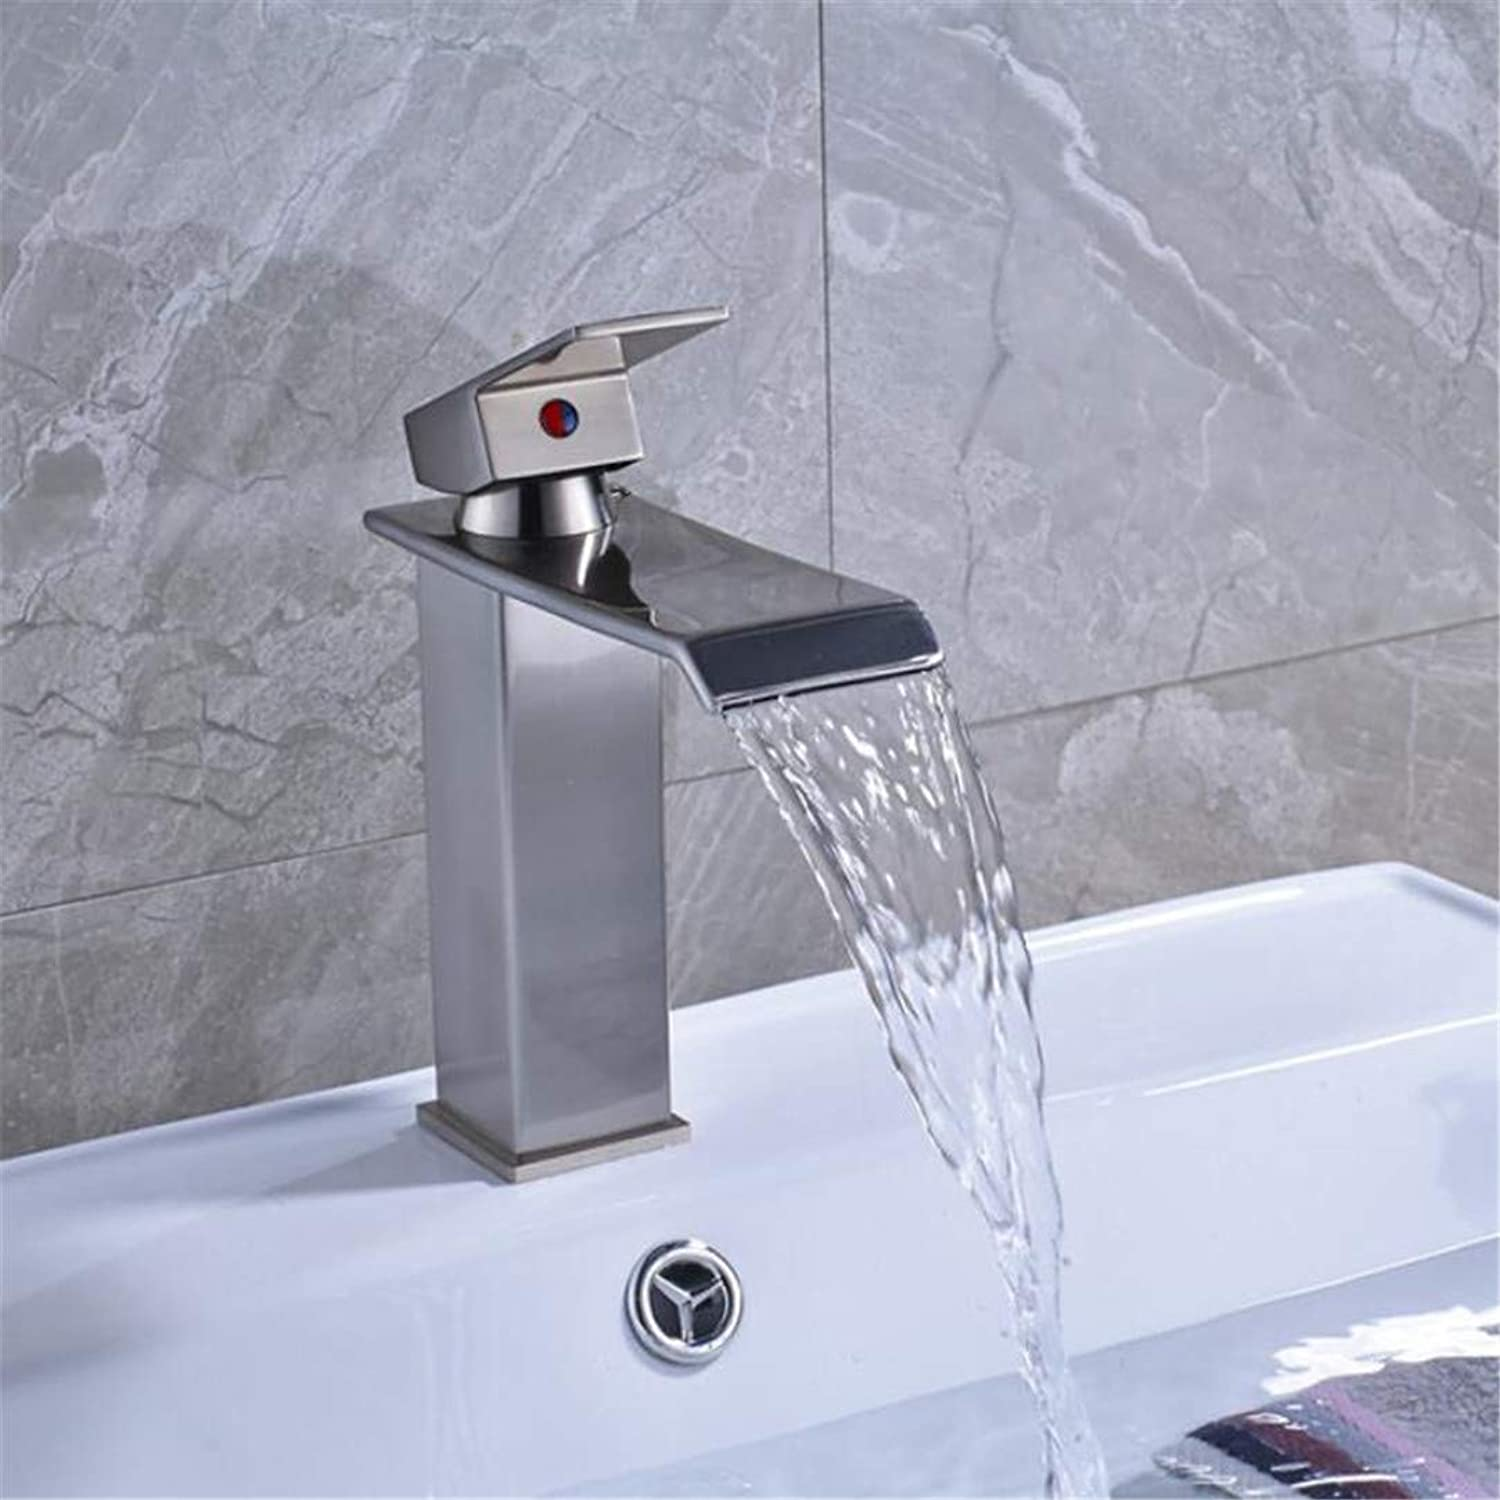 Faucet Washbasin Mixer Square golden Waterfall Basin Faucet One Handle Single Lever Bathroom Sink Vanity Mixer Faucet with Hot and Cold Water